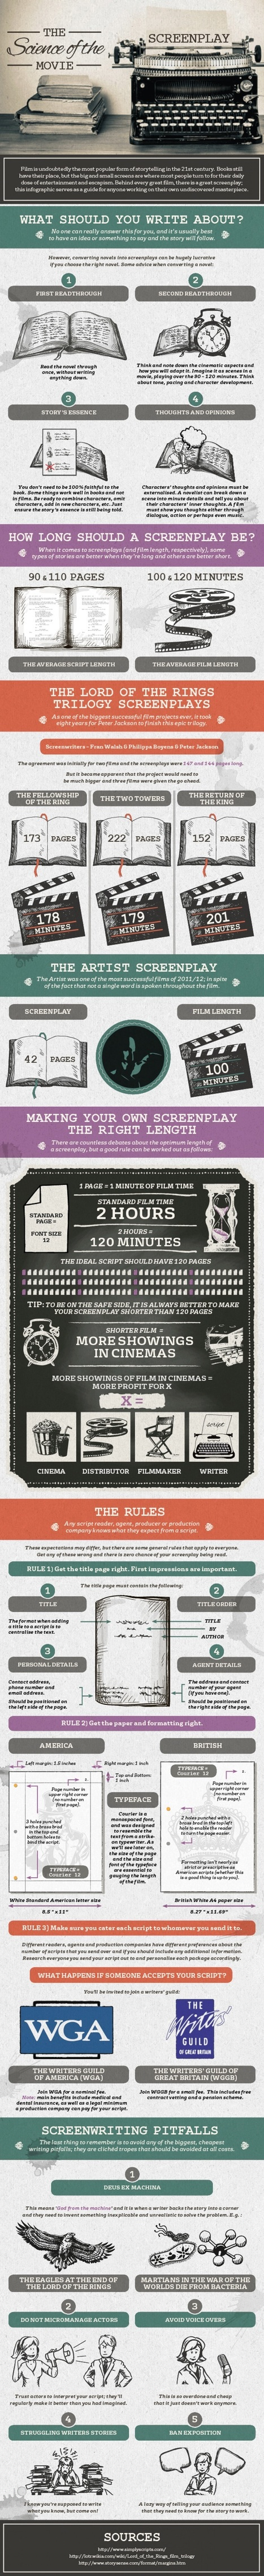 Screenwriting Essentials in Infographic Form | Transmedia: Storytelling for the Digital Age | Scoop.it